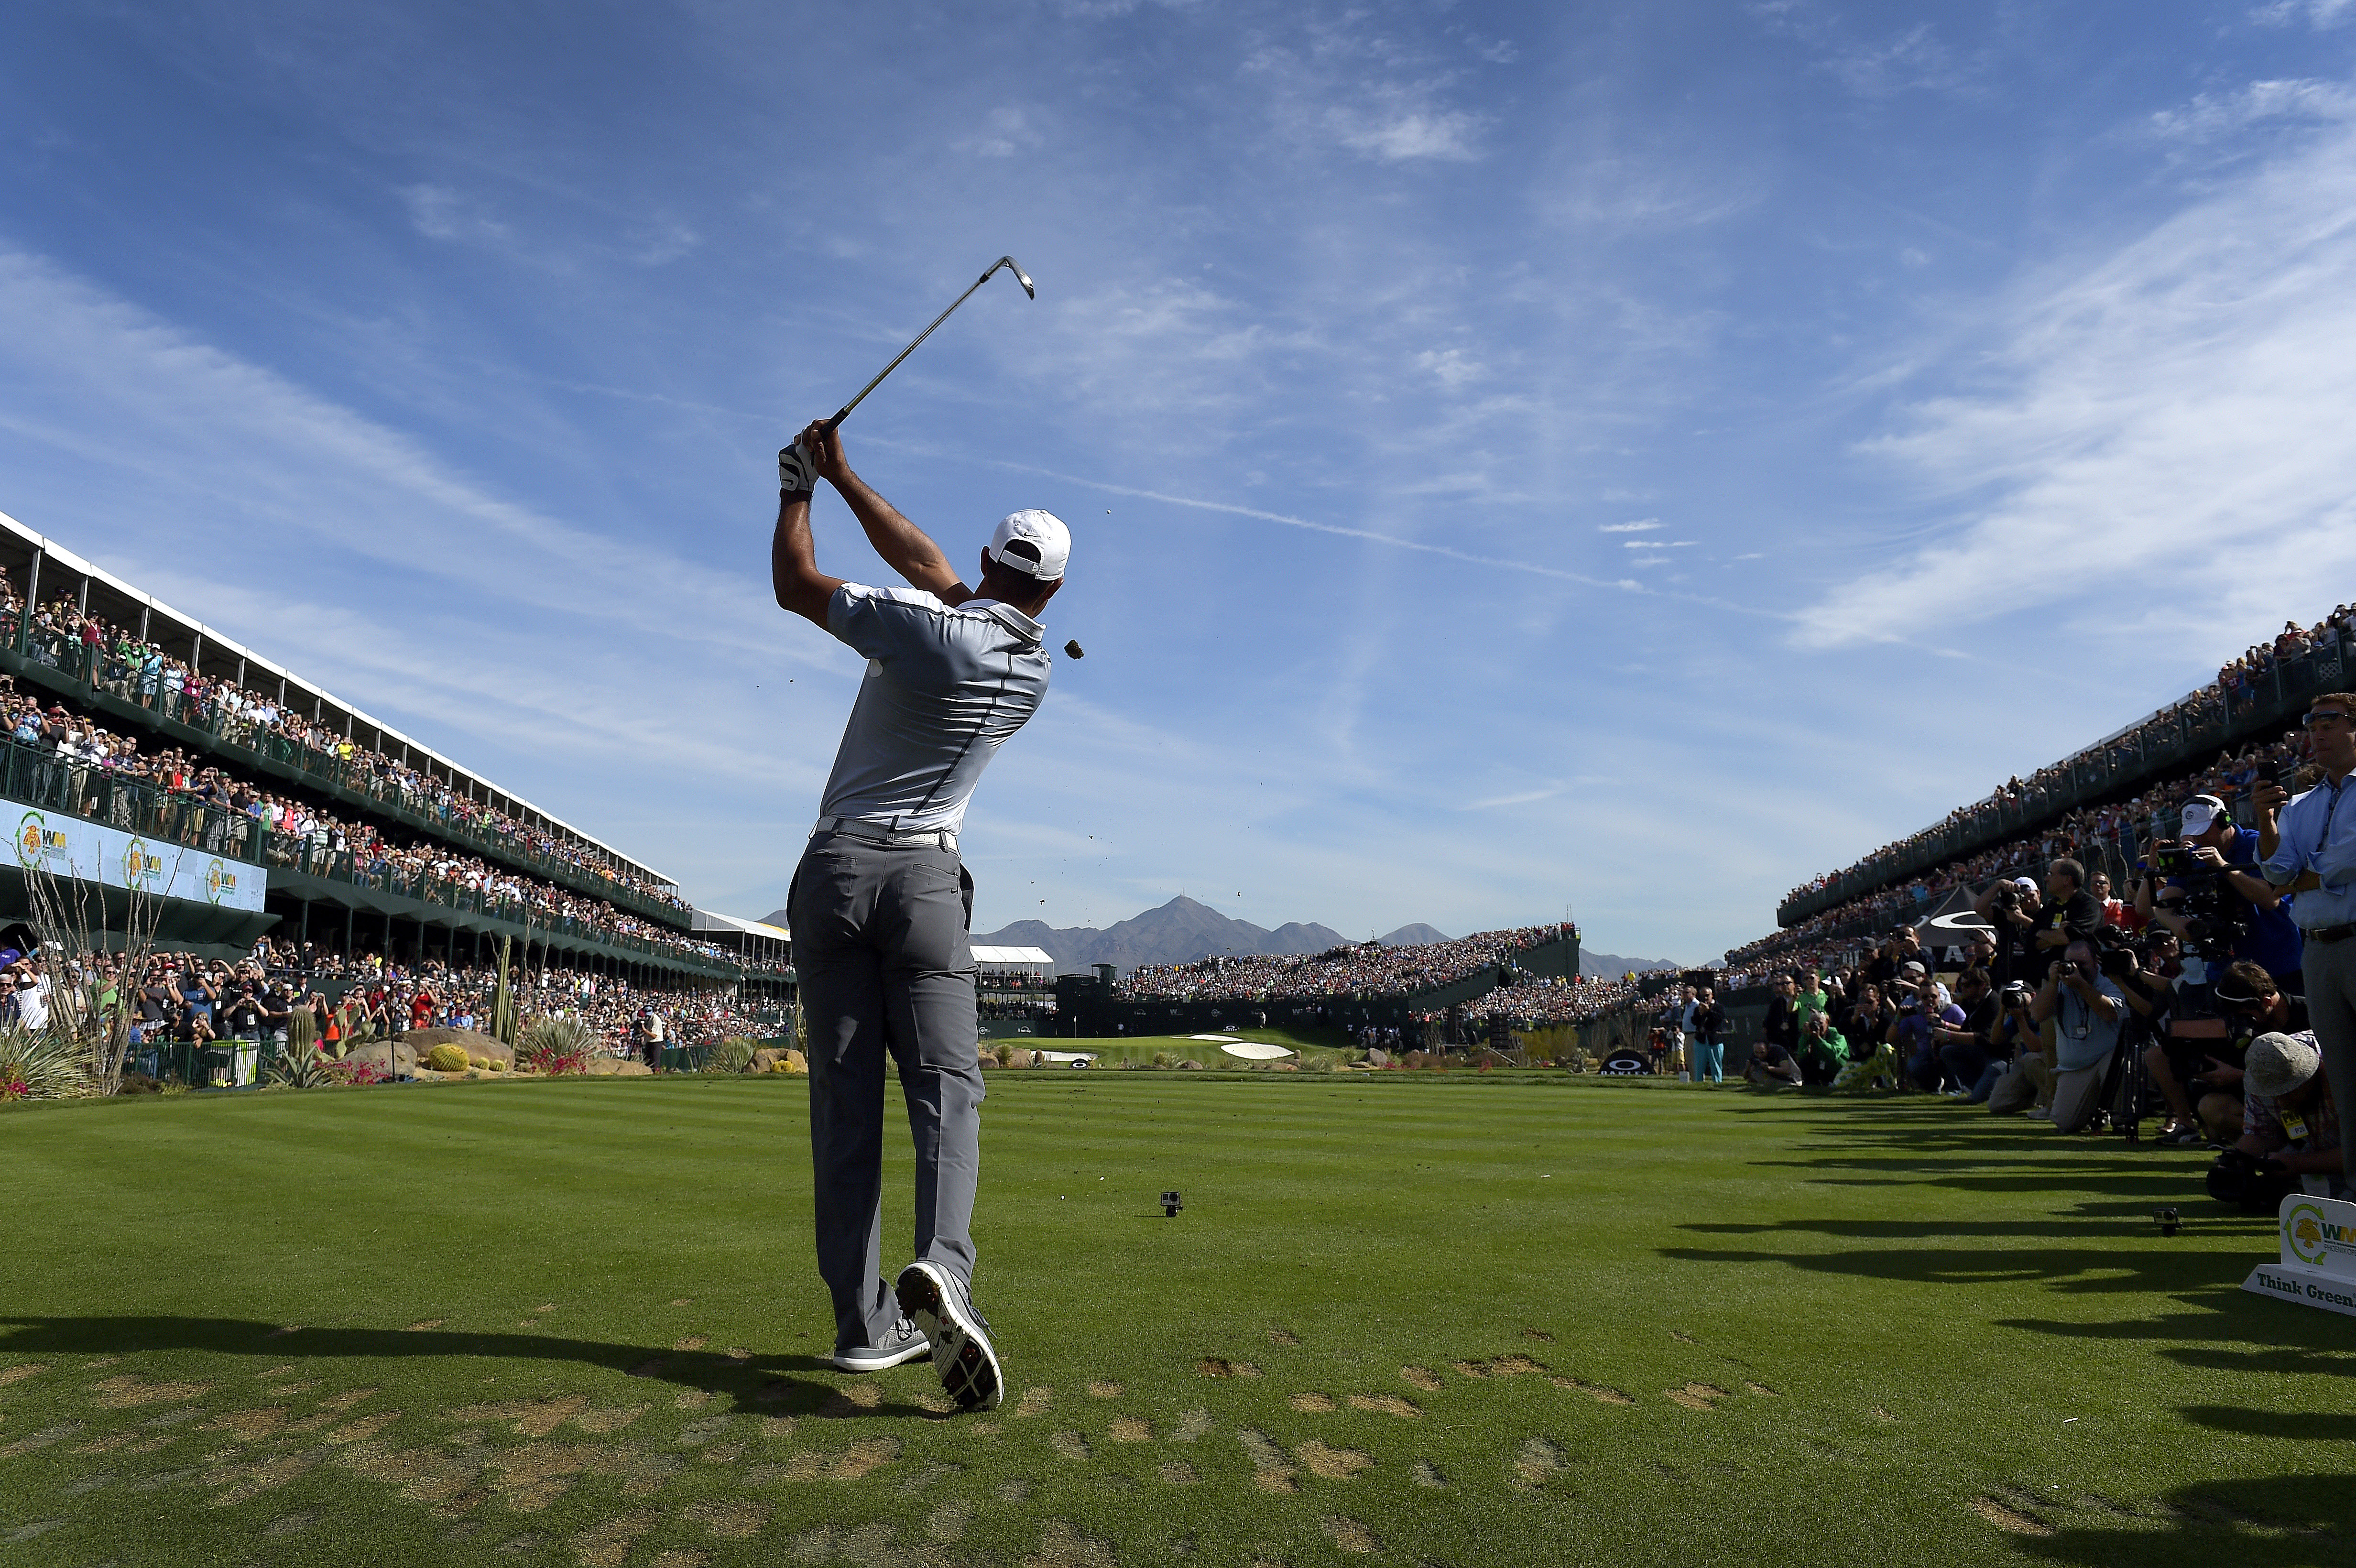 Tiger Woods tees off on the par-3 16th hole at TPC Scottsdale during a practice round prior to the 2015 Phoenix Open.